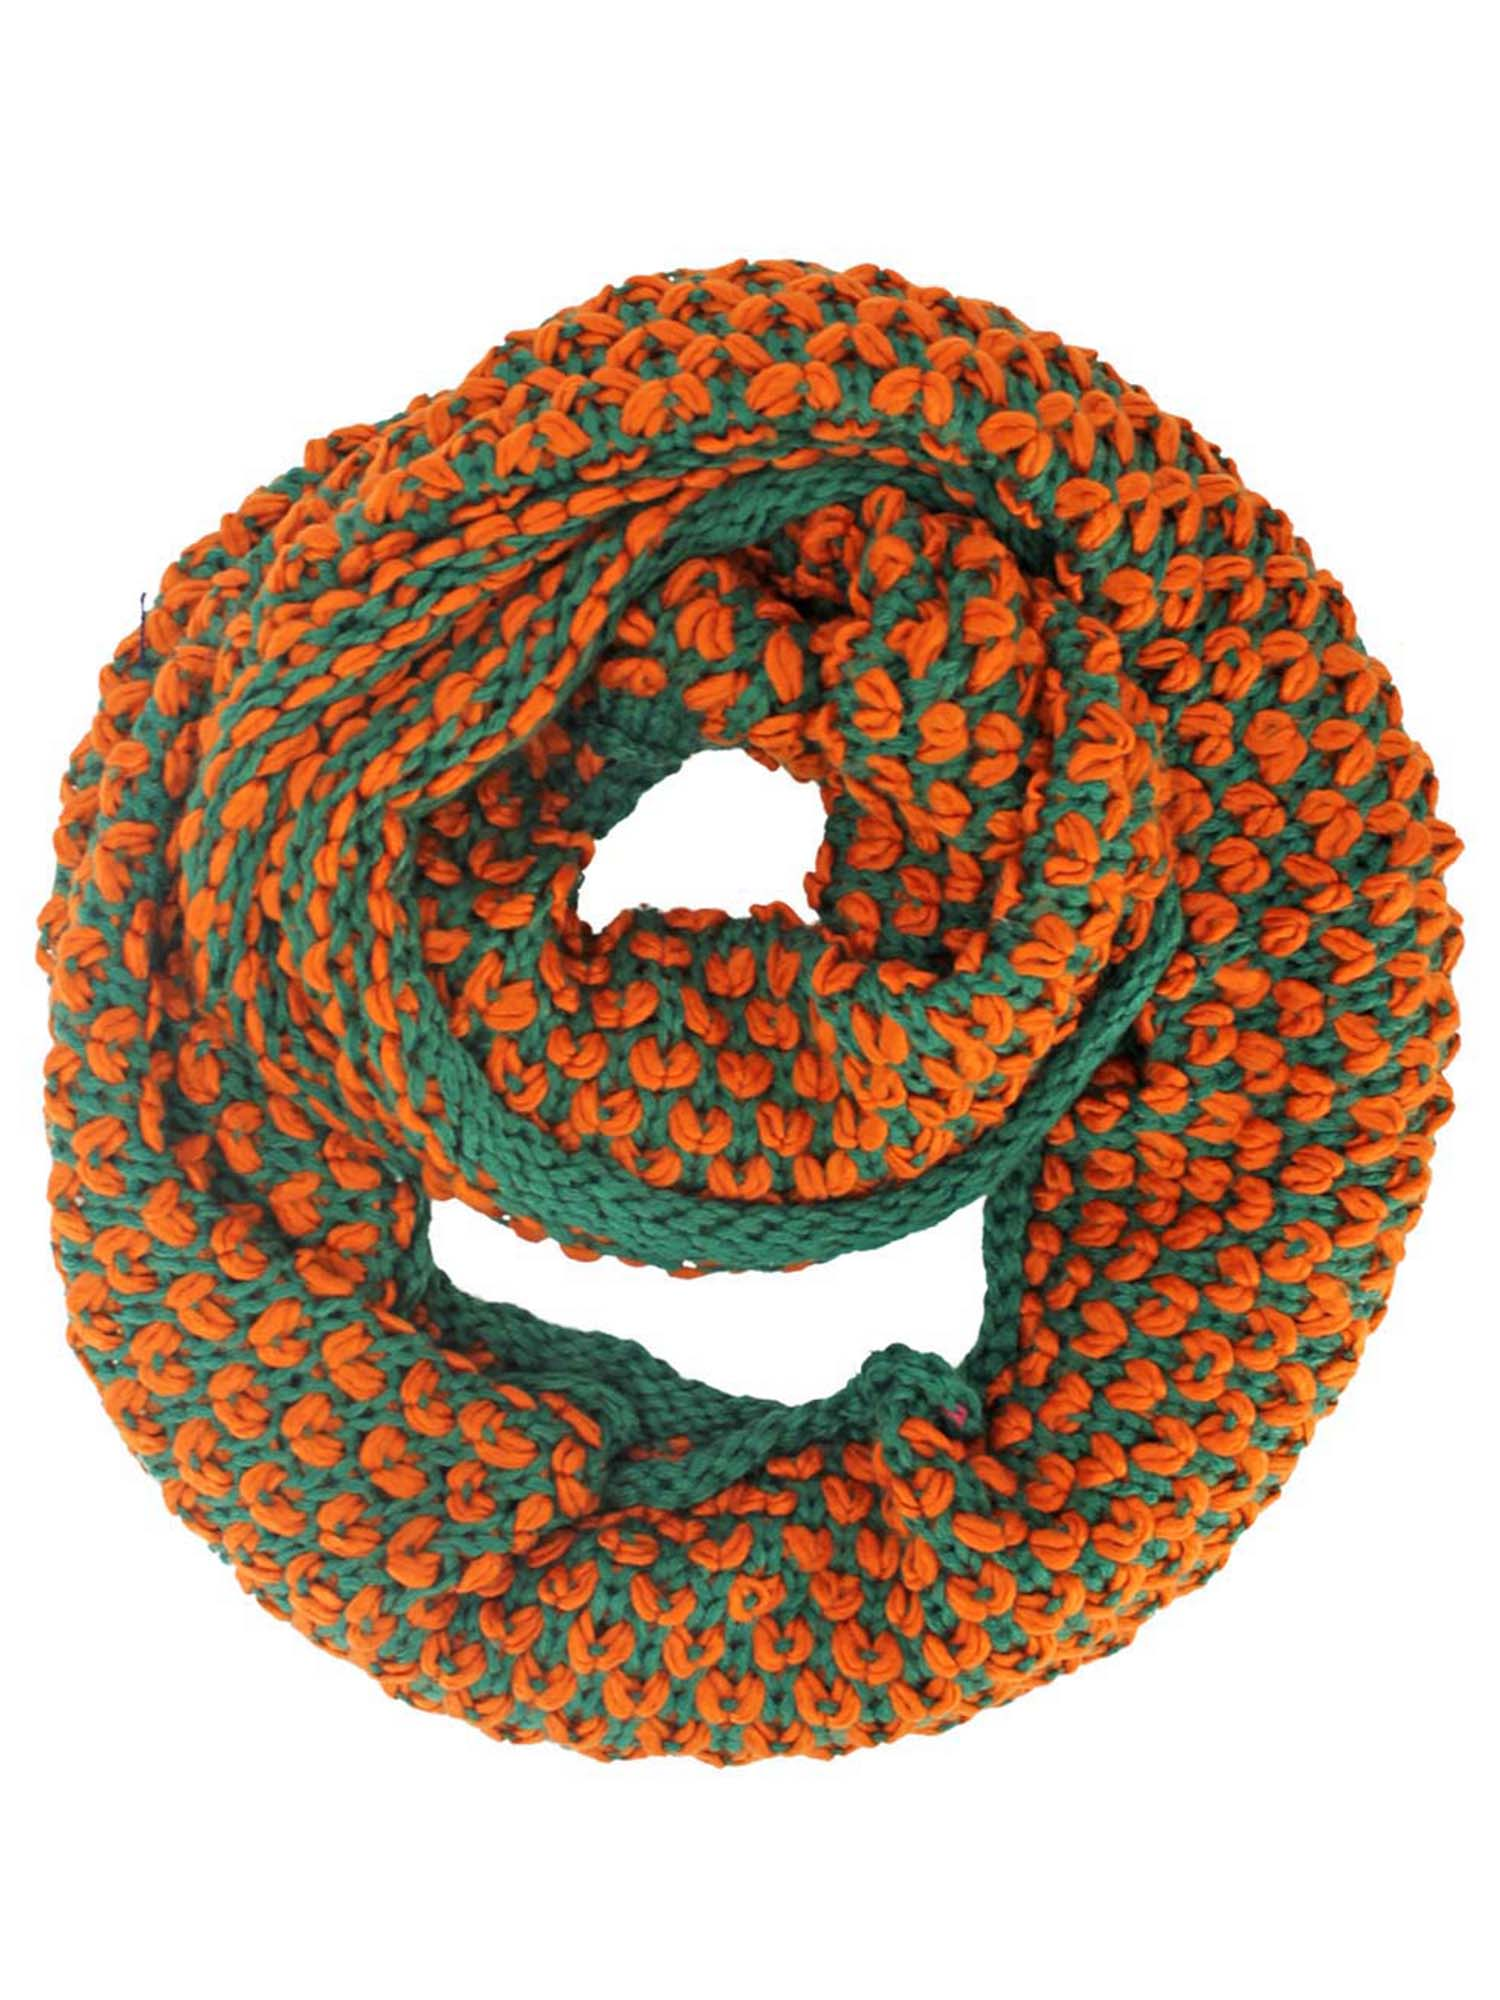 Two-Tone Knit Winter Infinity Scarf